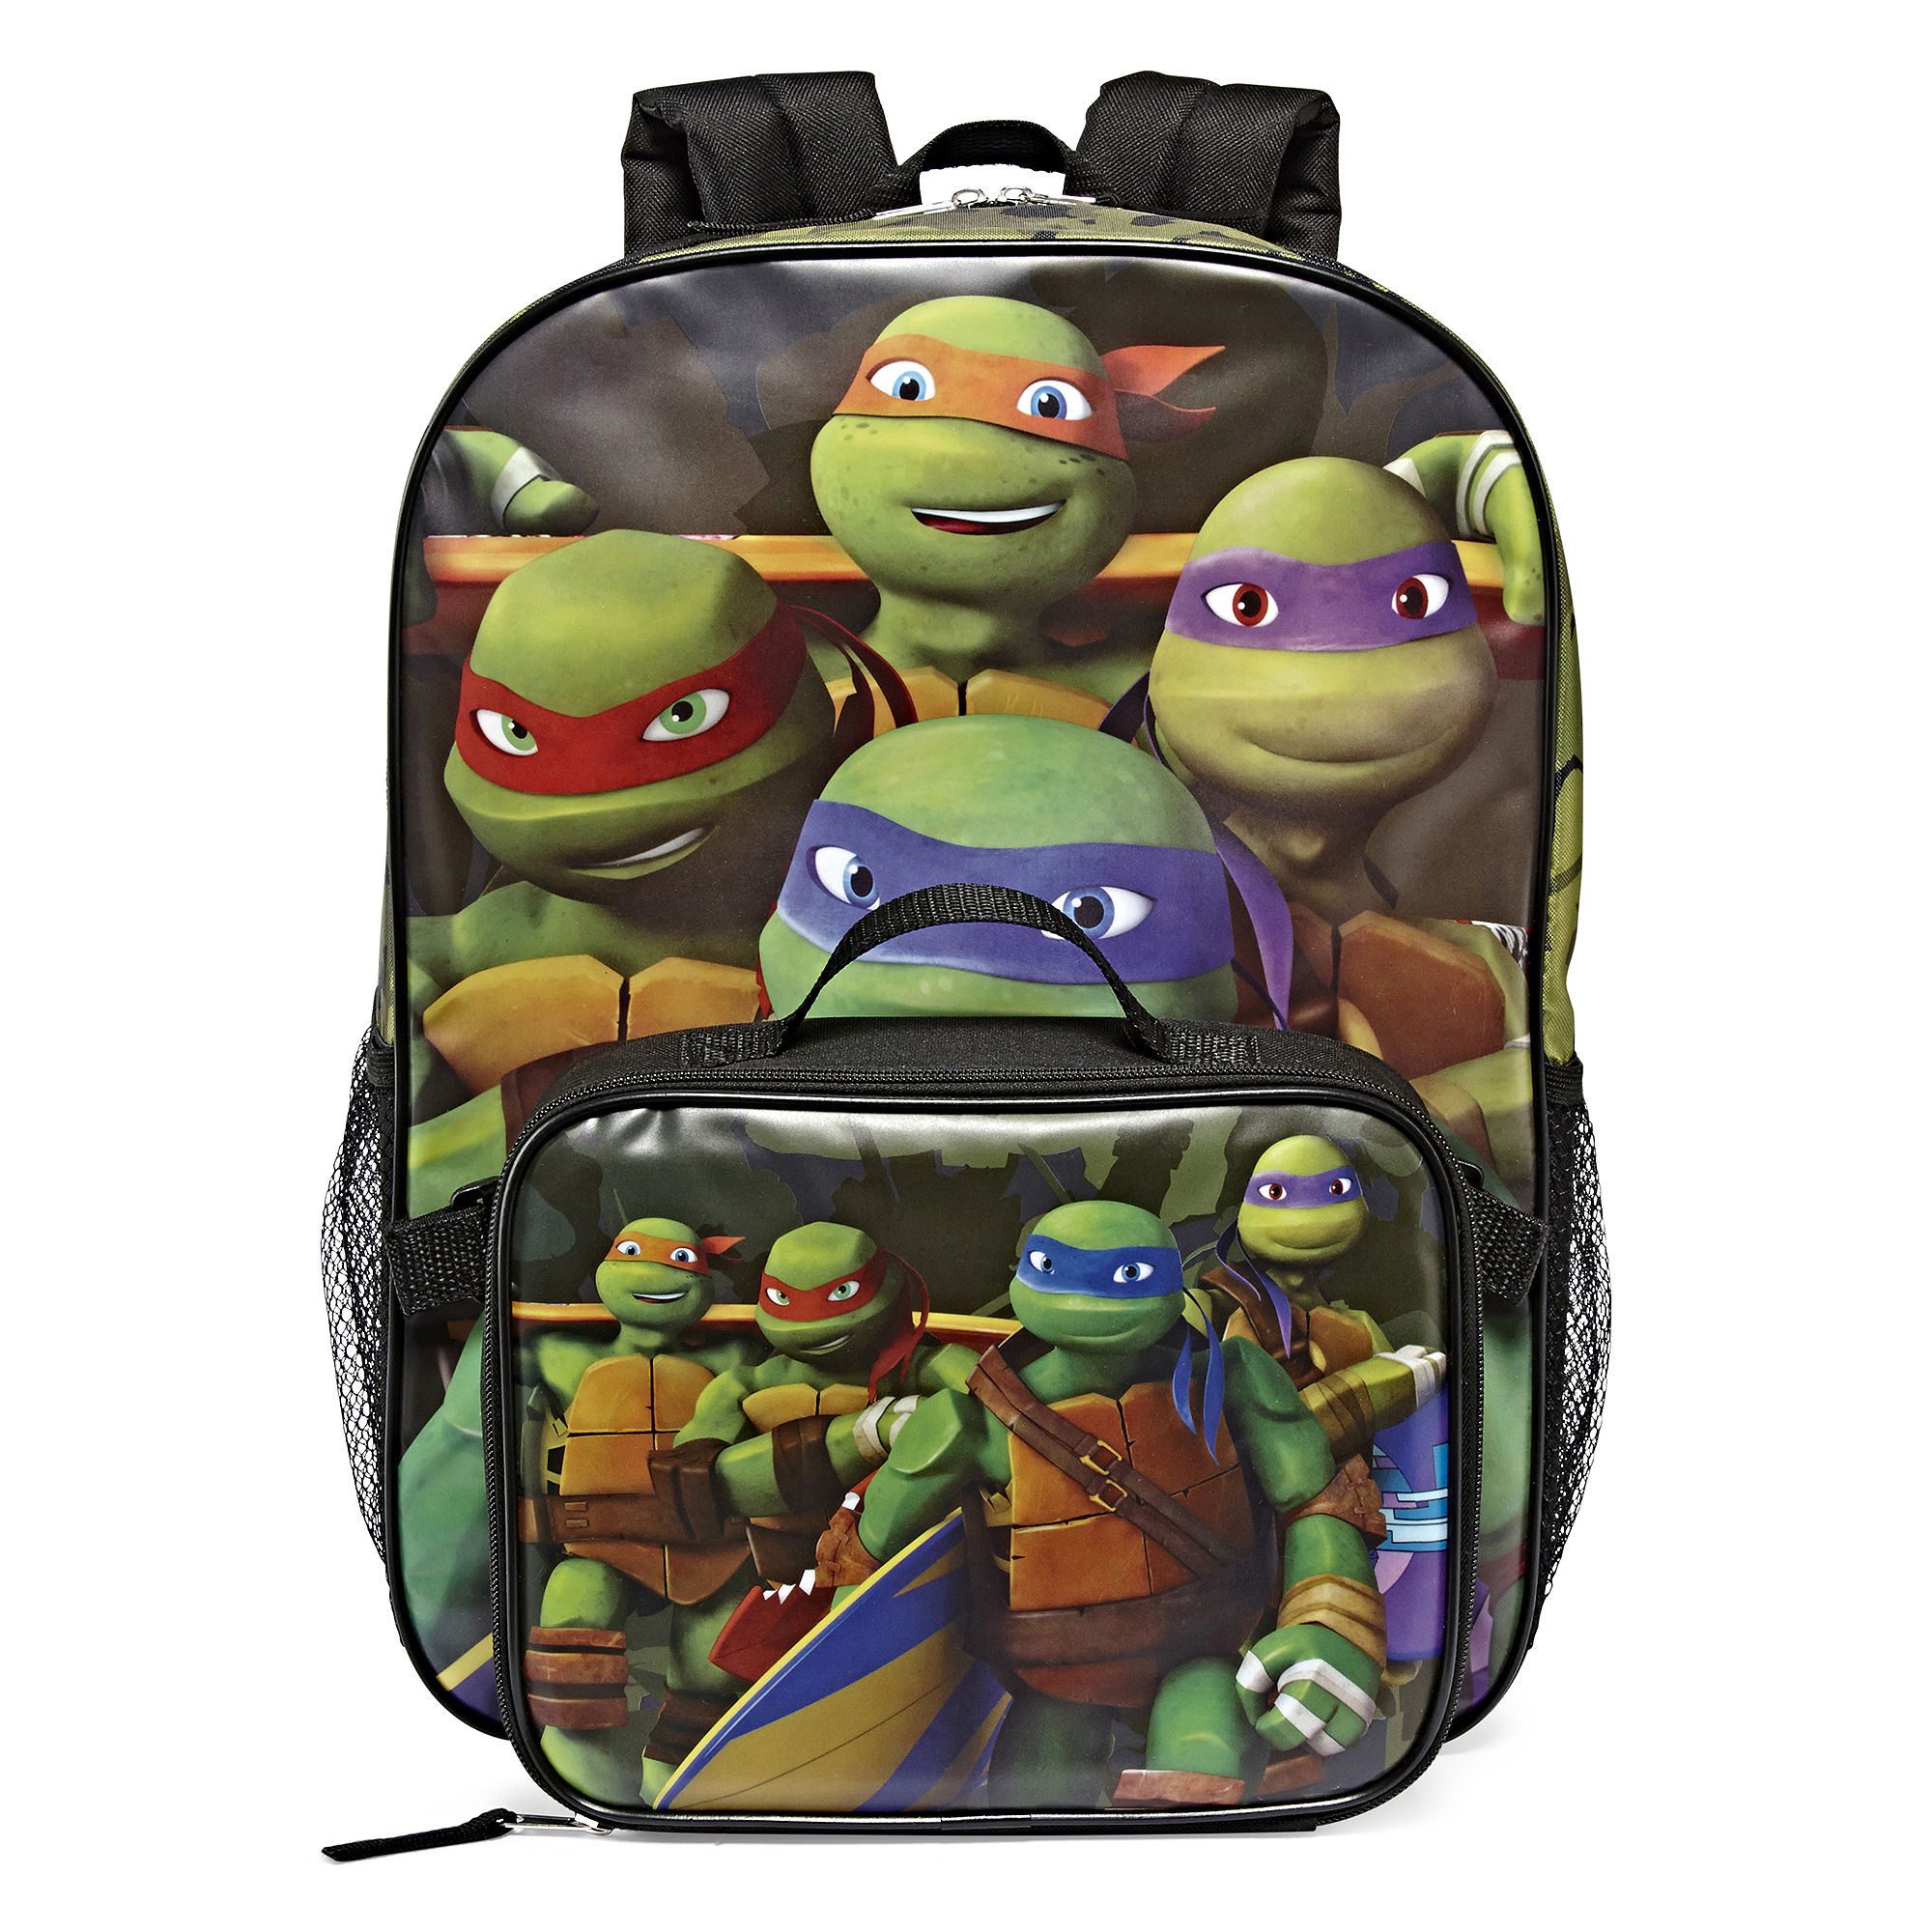 Upc 843340112336 Product Image For Children S Back To School Age Mutant Ninja Turtles Backpack And Lunch